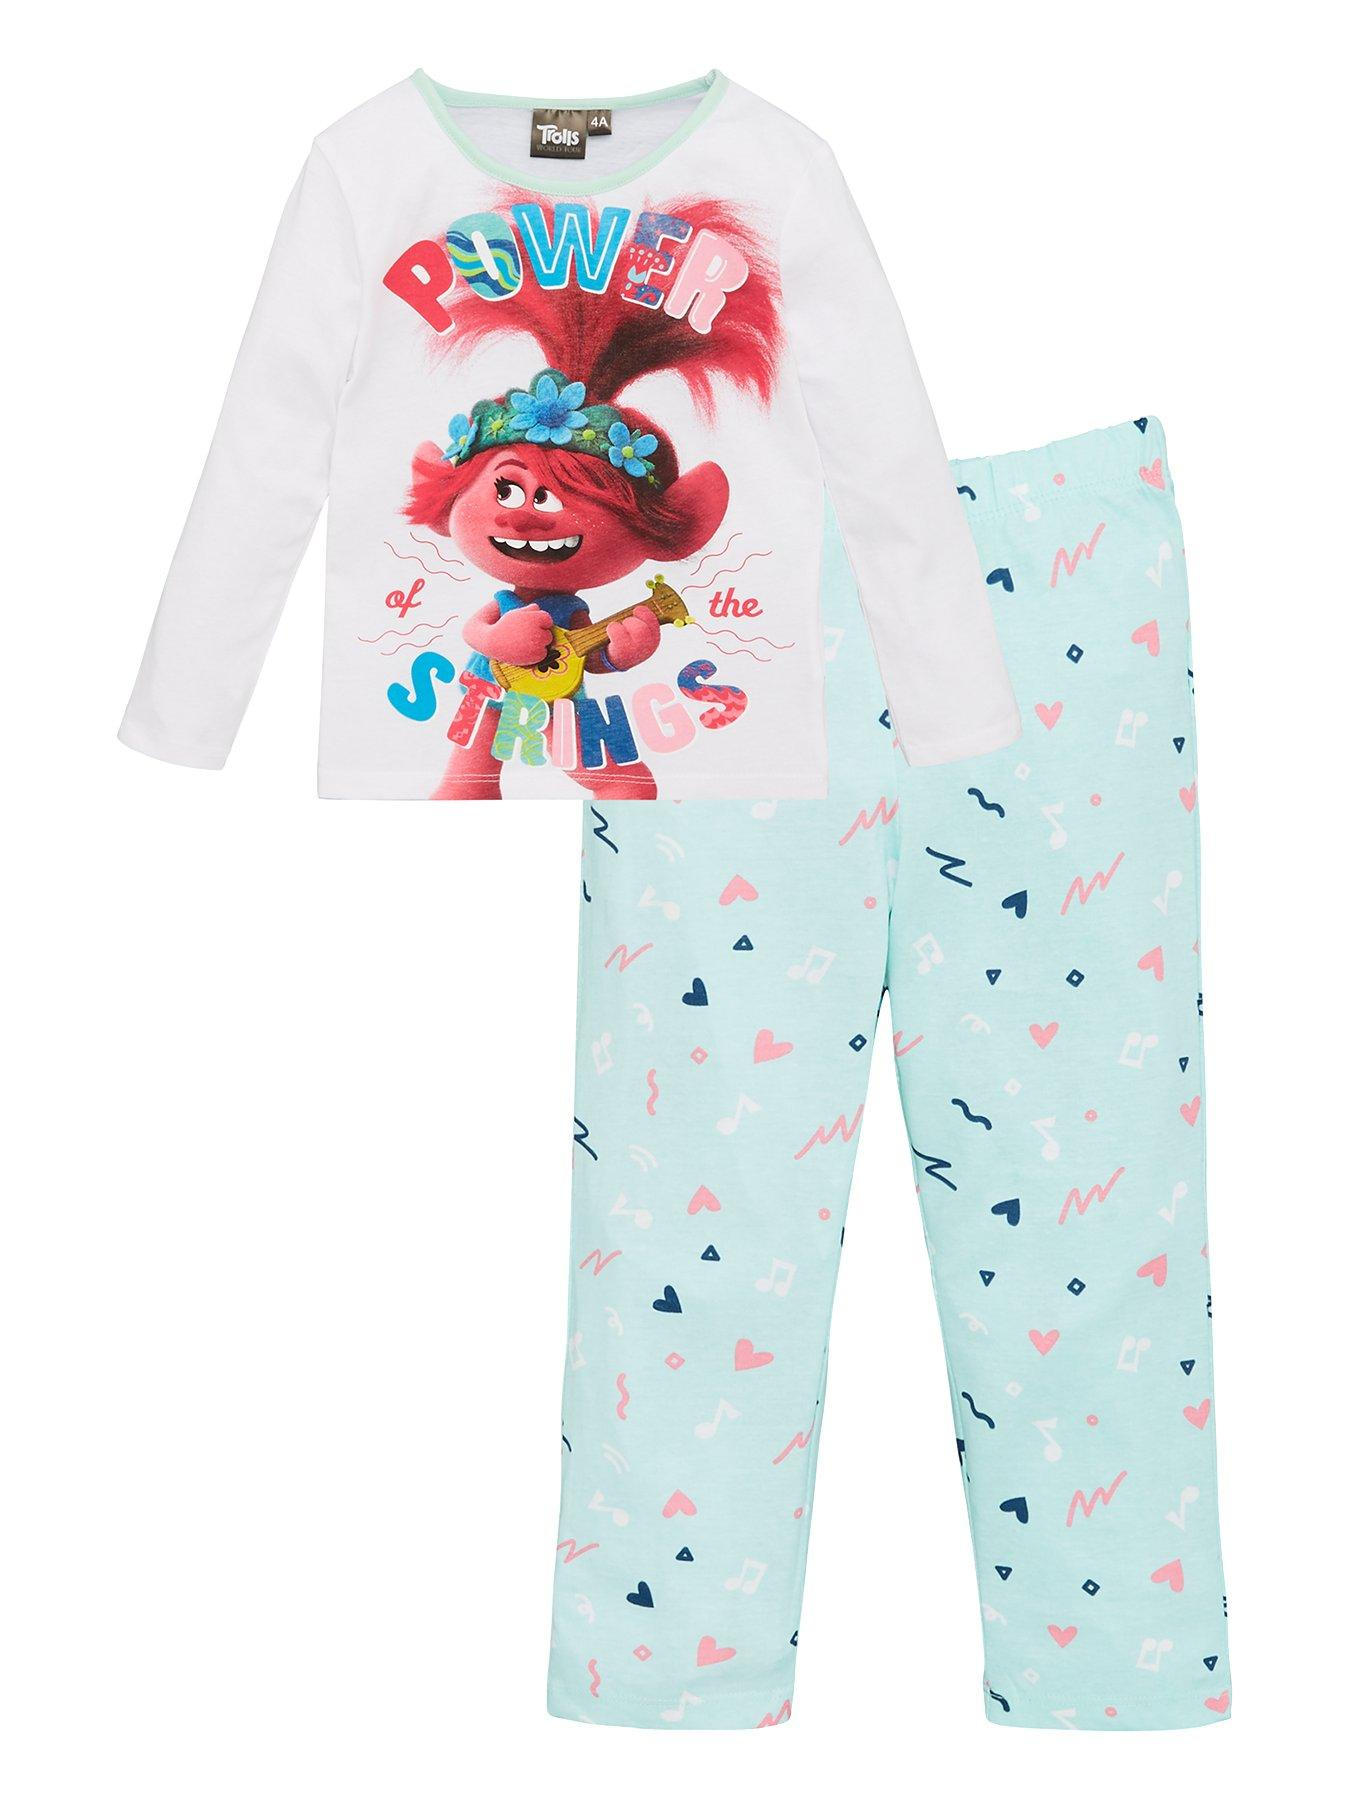 New Minnie Mouse girls toddler disney boutique outfit ruffles short 3 4 5 6 7 8